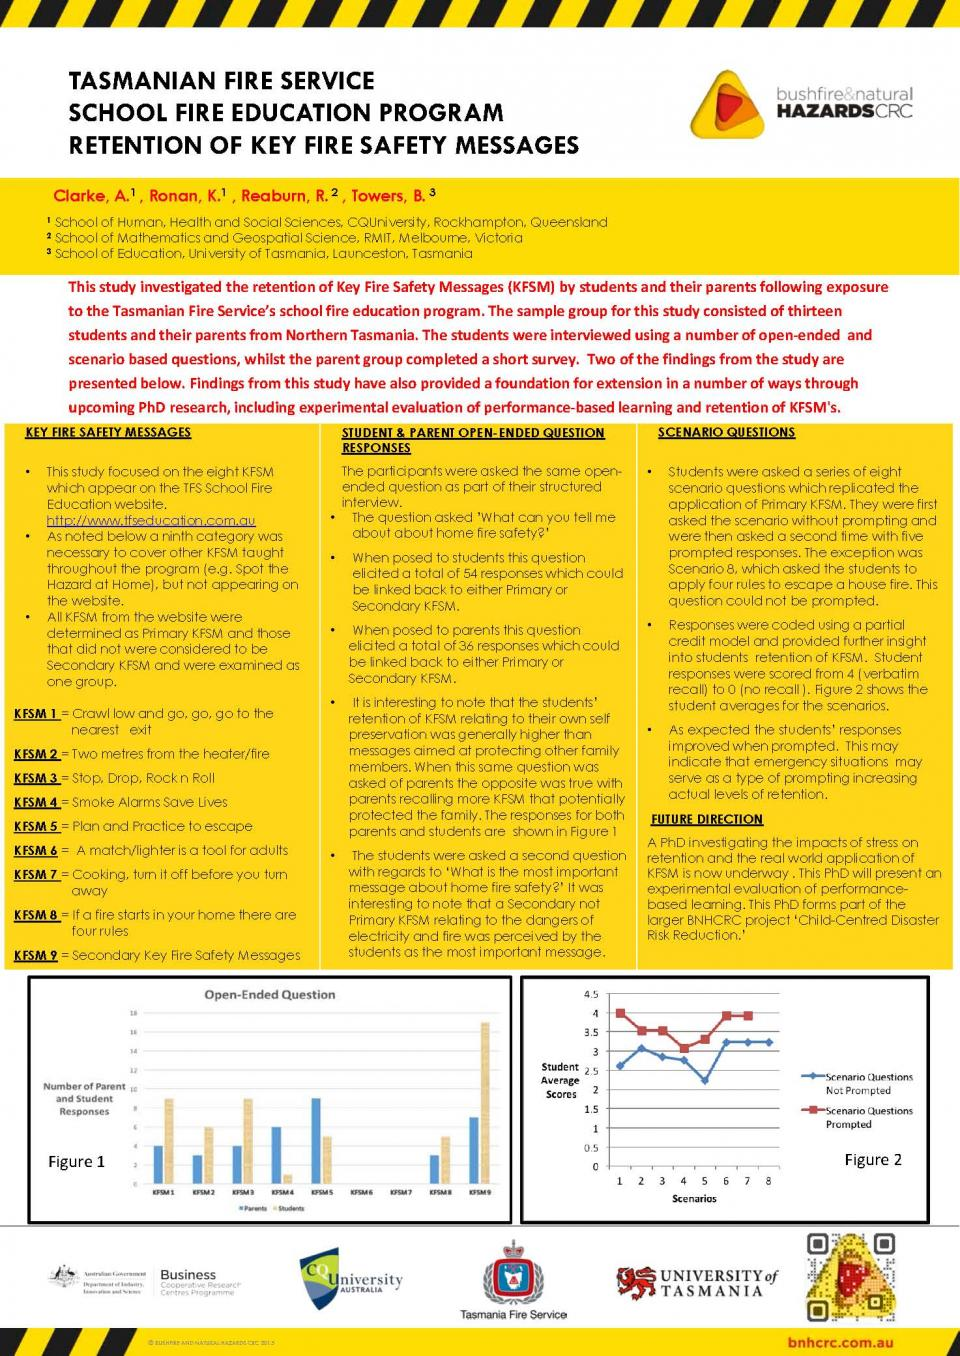 Andrew Clarke Conference Poster 2016